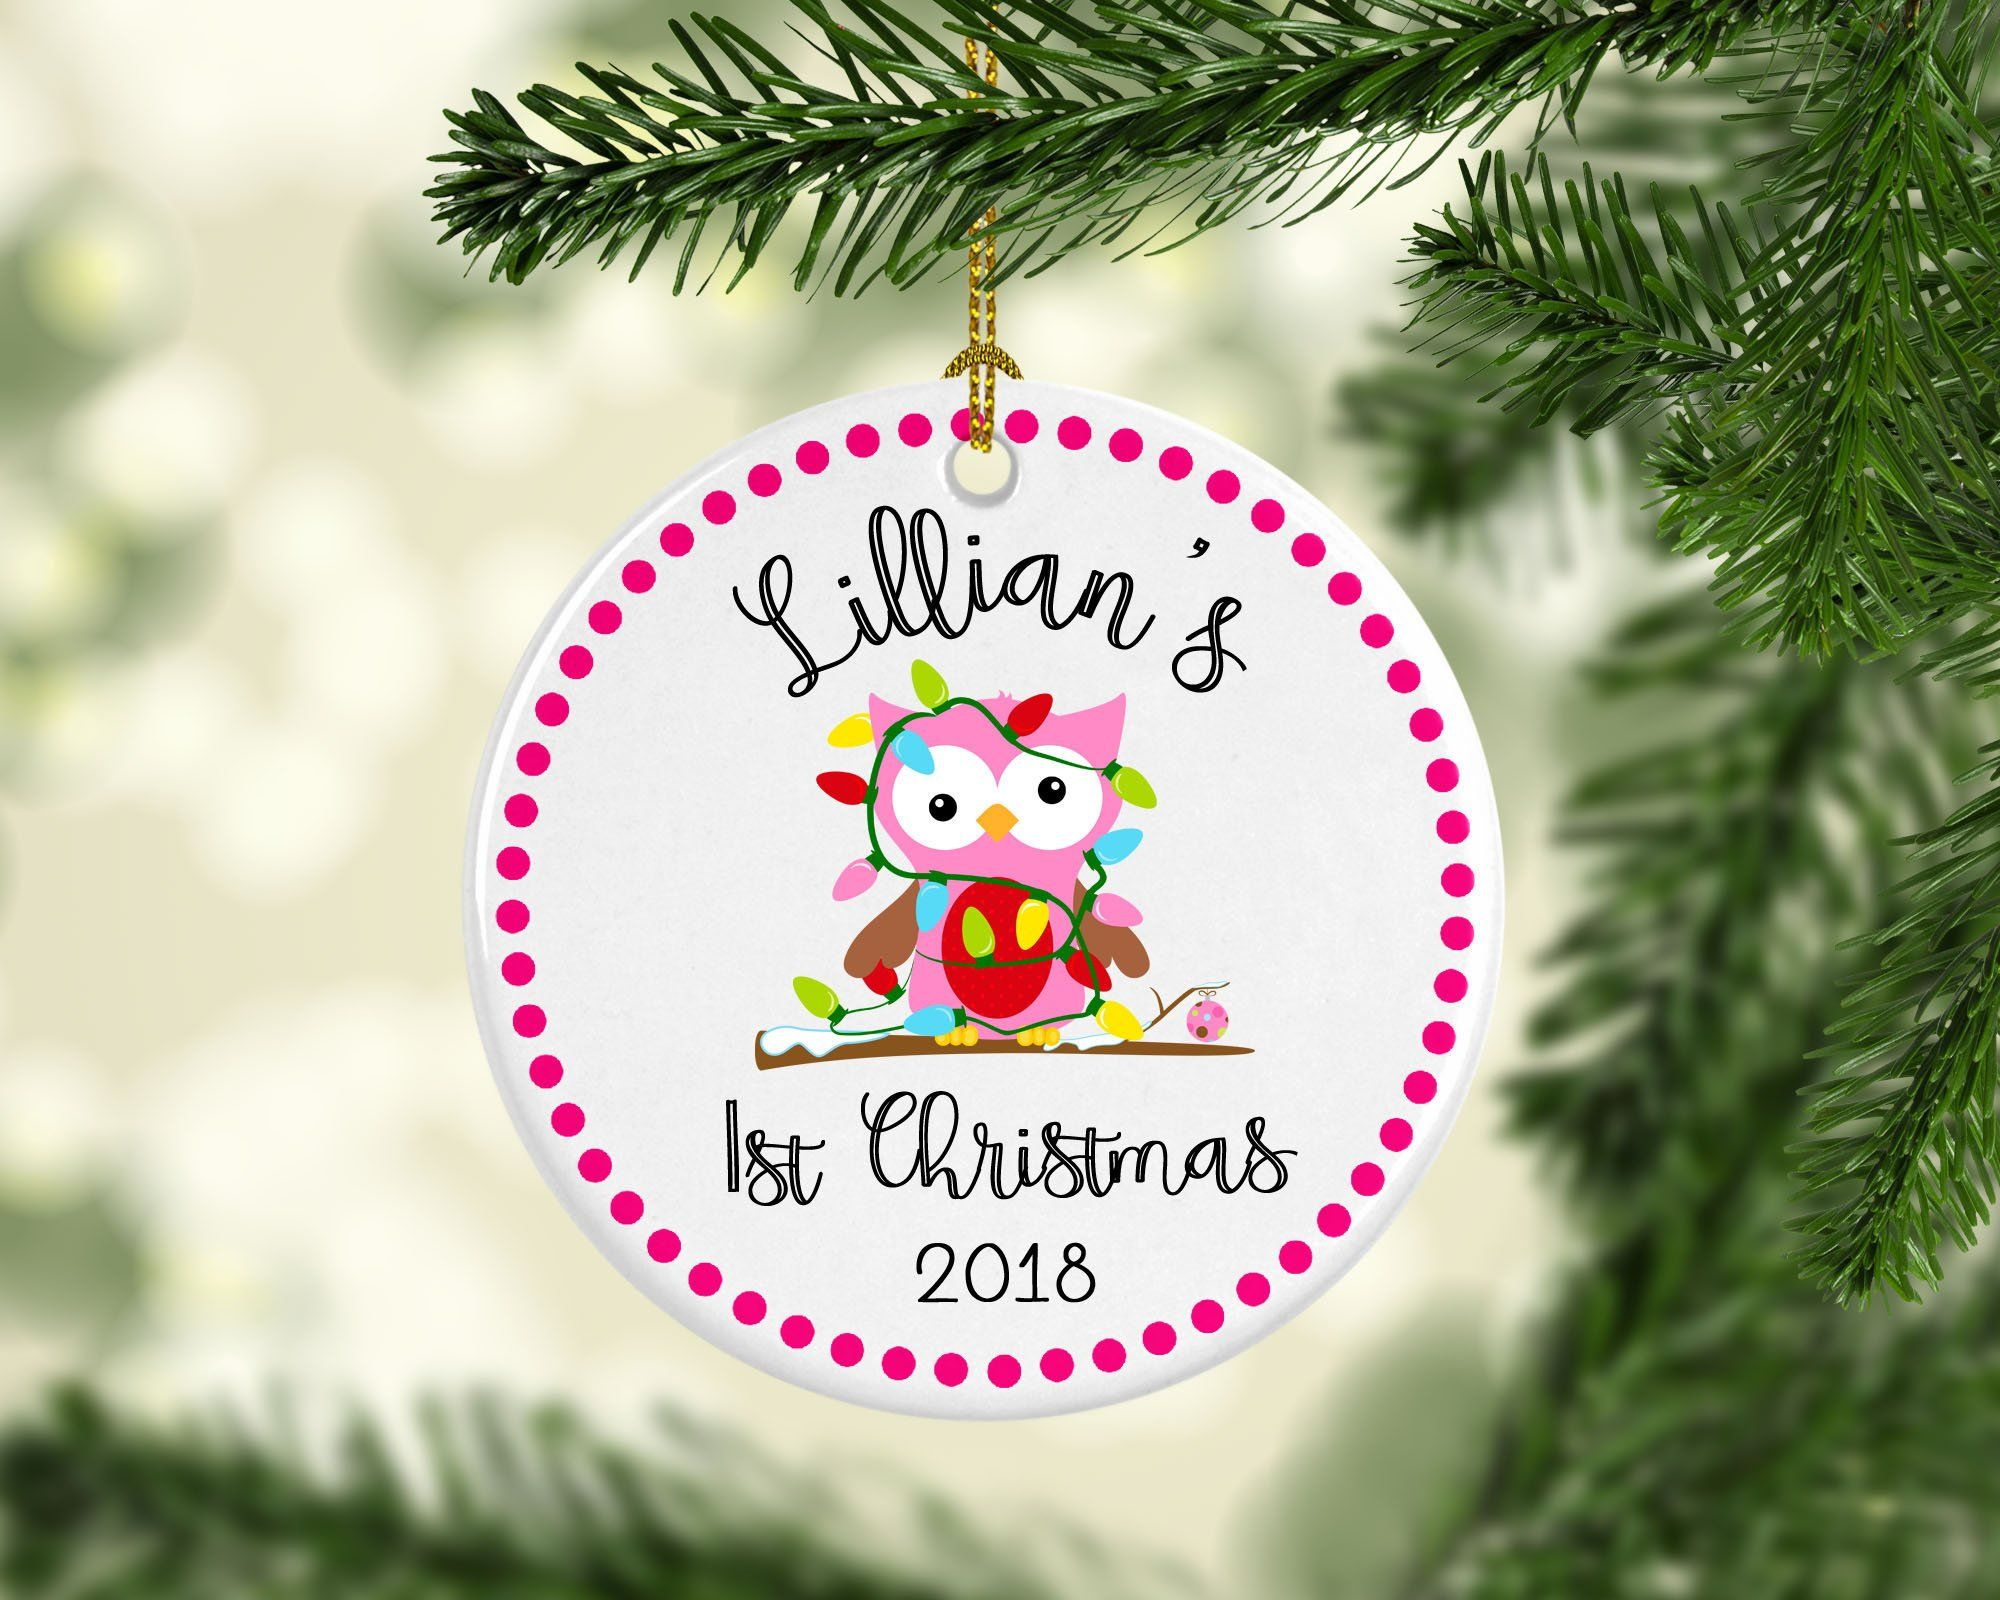 Baby S 1st Christmas Ornament Baby First Christmas Personalized Christmas Ornament Owl Ornament Baby Shower Gift Baby Girl Or B Baby S 1st Christmas Ornament Personalized Christmas Ornaments Babys 1st Christmas